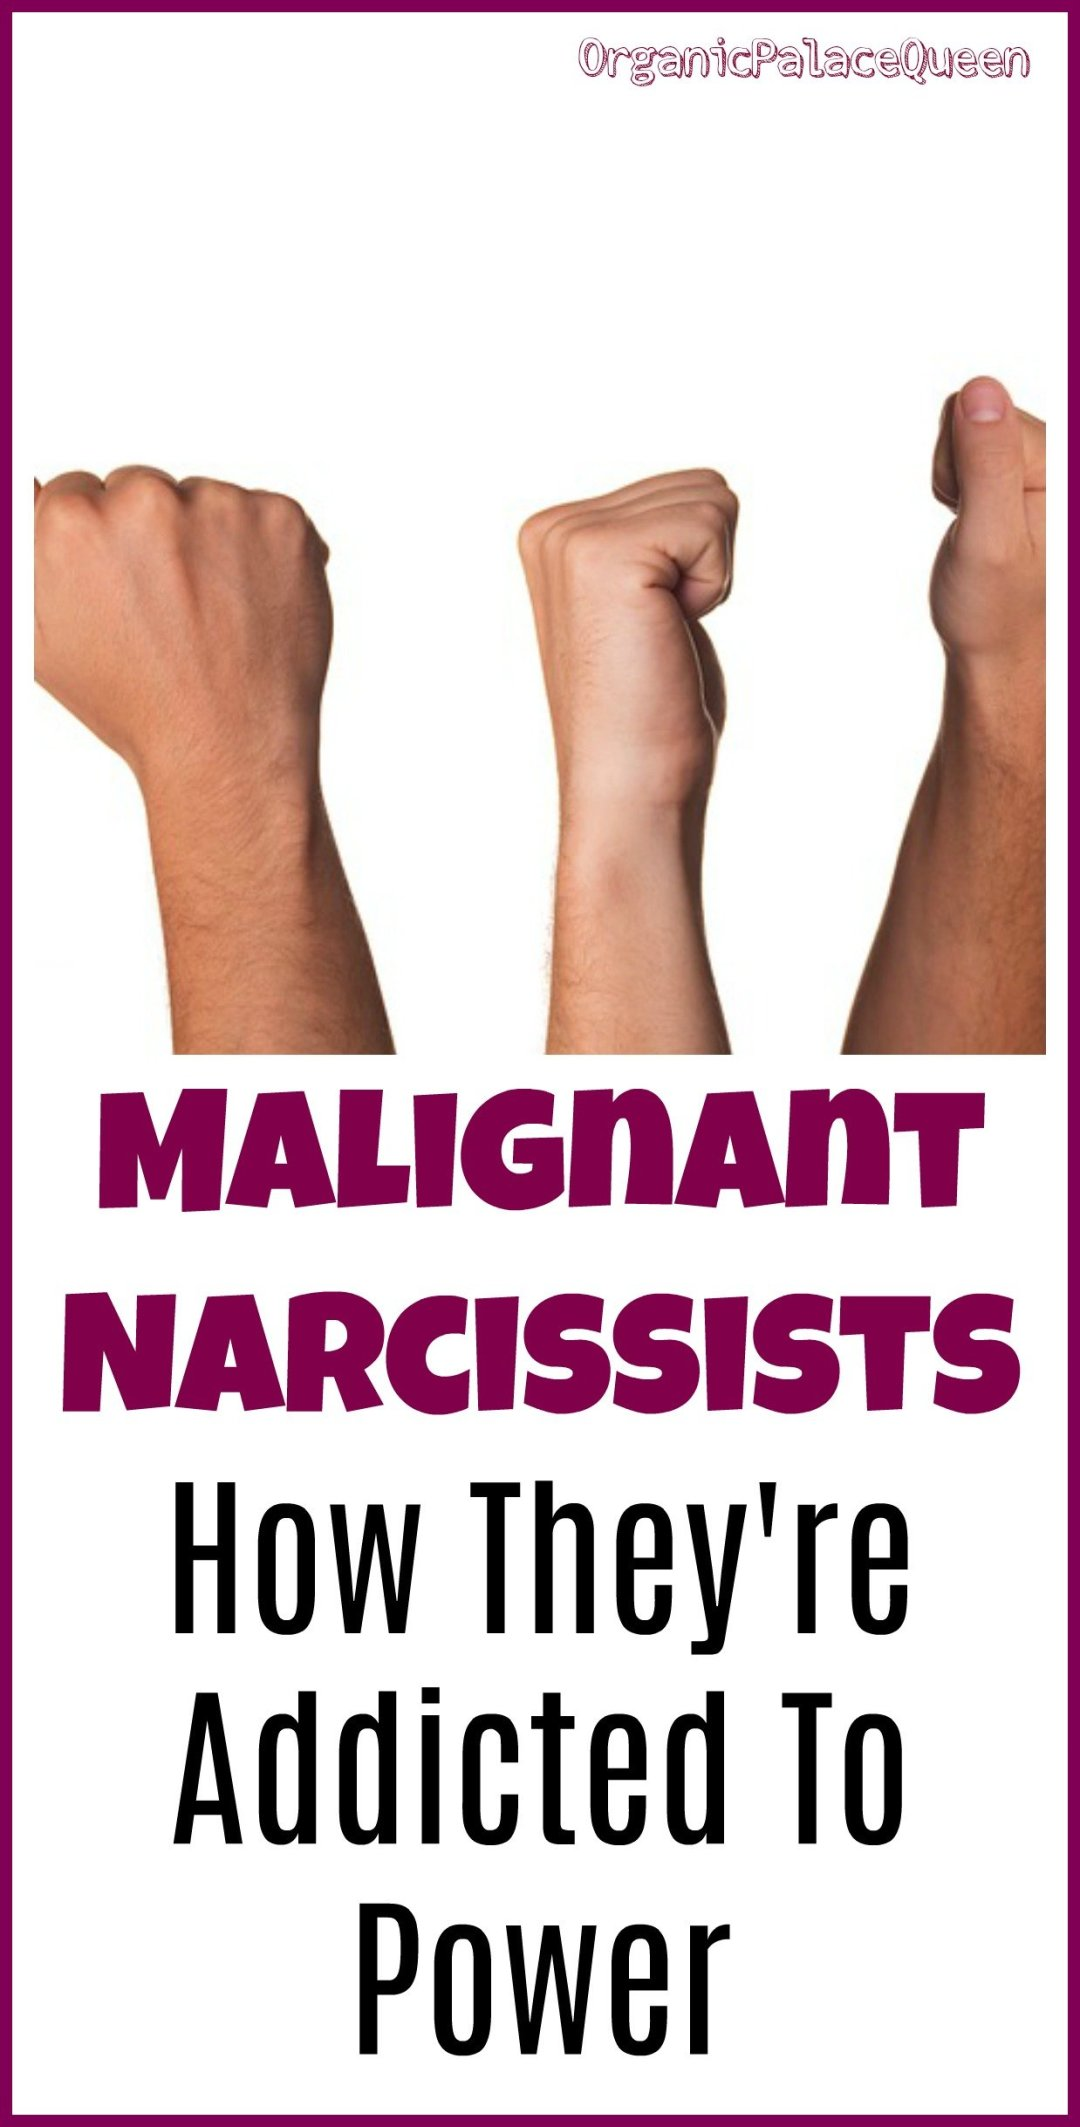 How narcissists are addicted to power